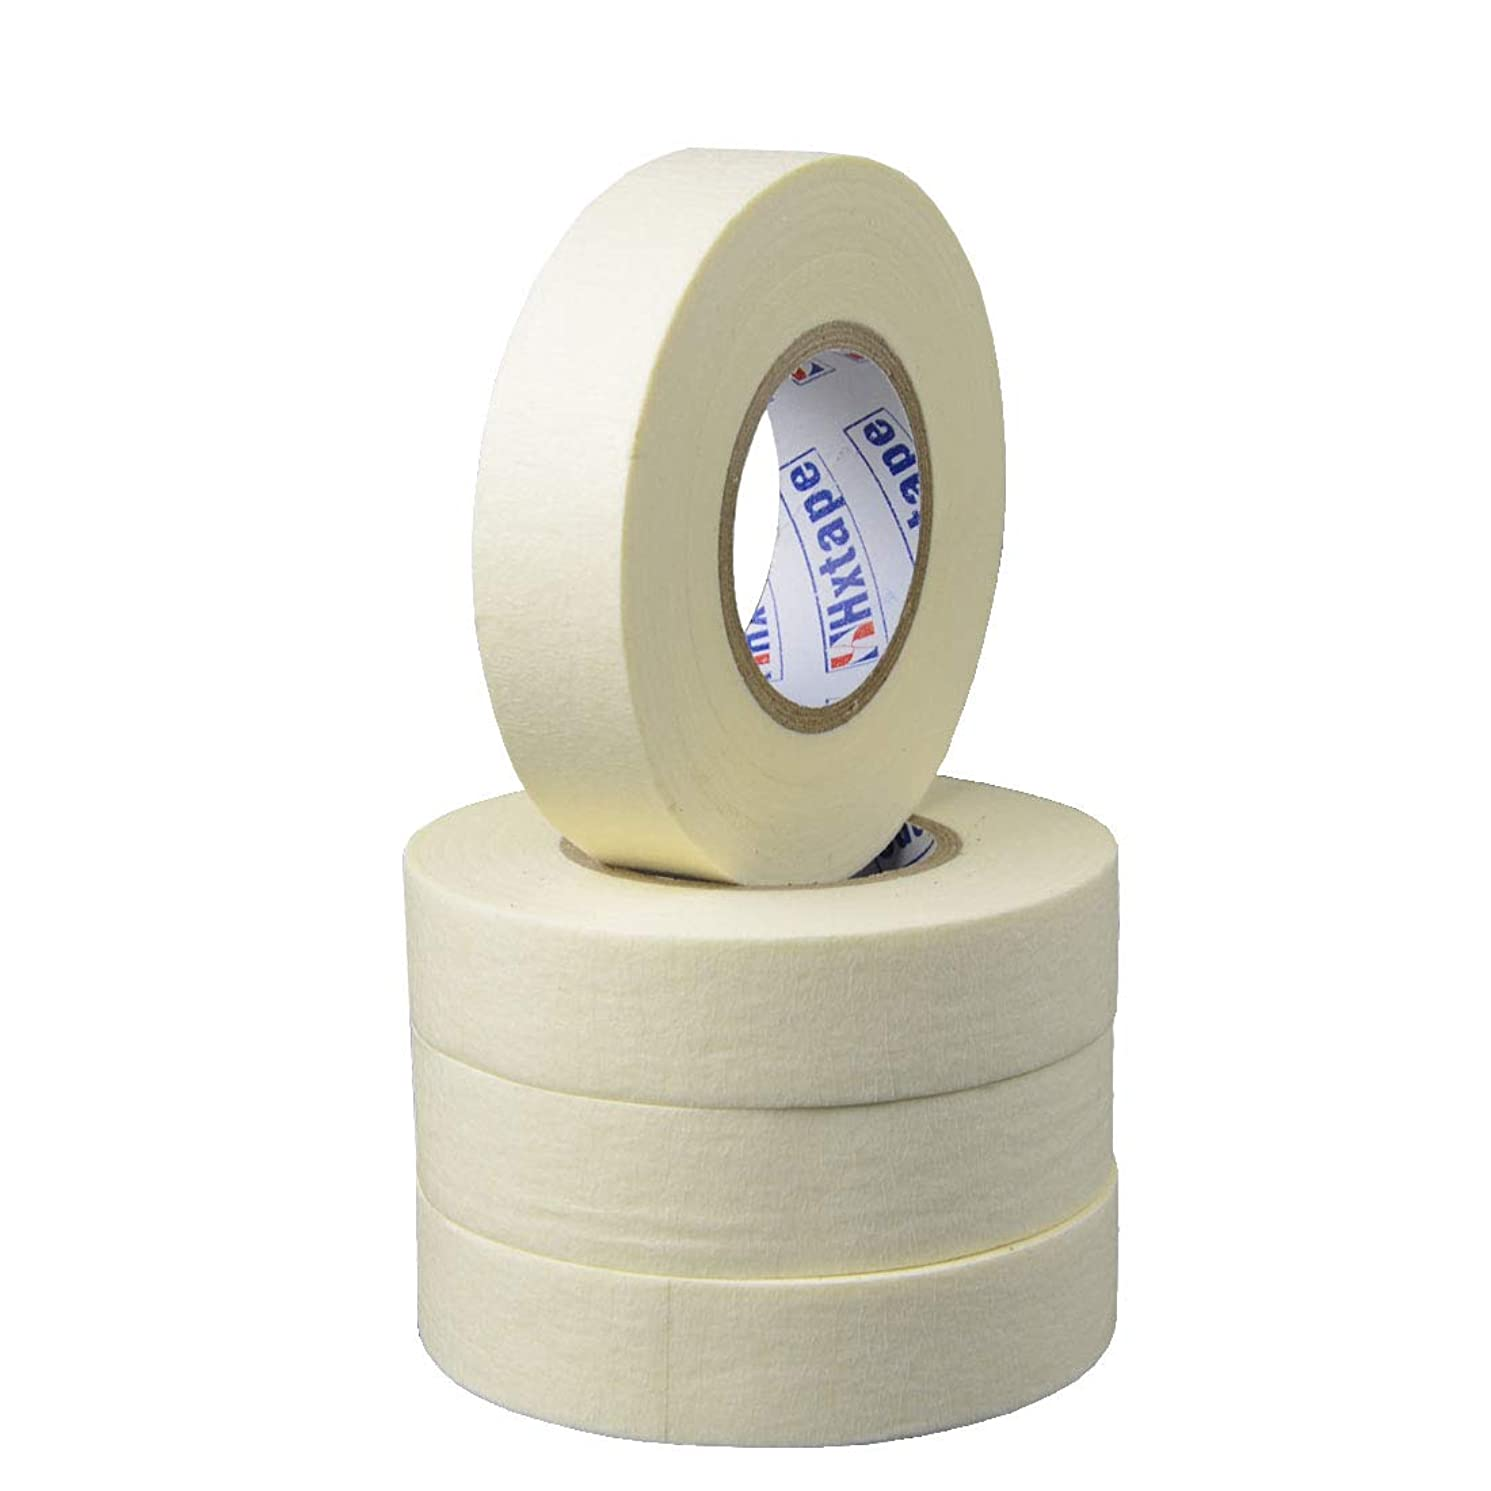 Hxtape White Masking Tape,Multi Size Choices,Easy Tear Multi-Use Tape,Adhesive Leaves No Residue,Great for Labeling, Painting, Packing (3/4